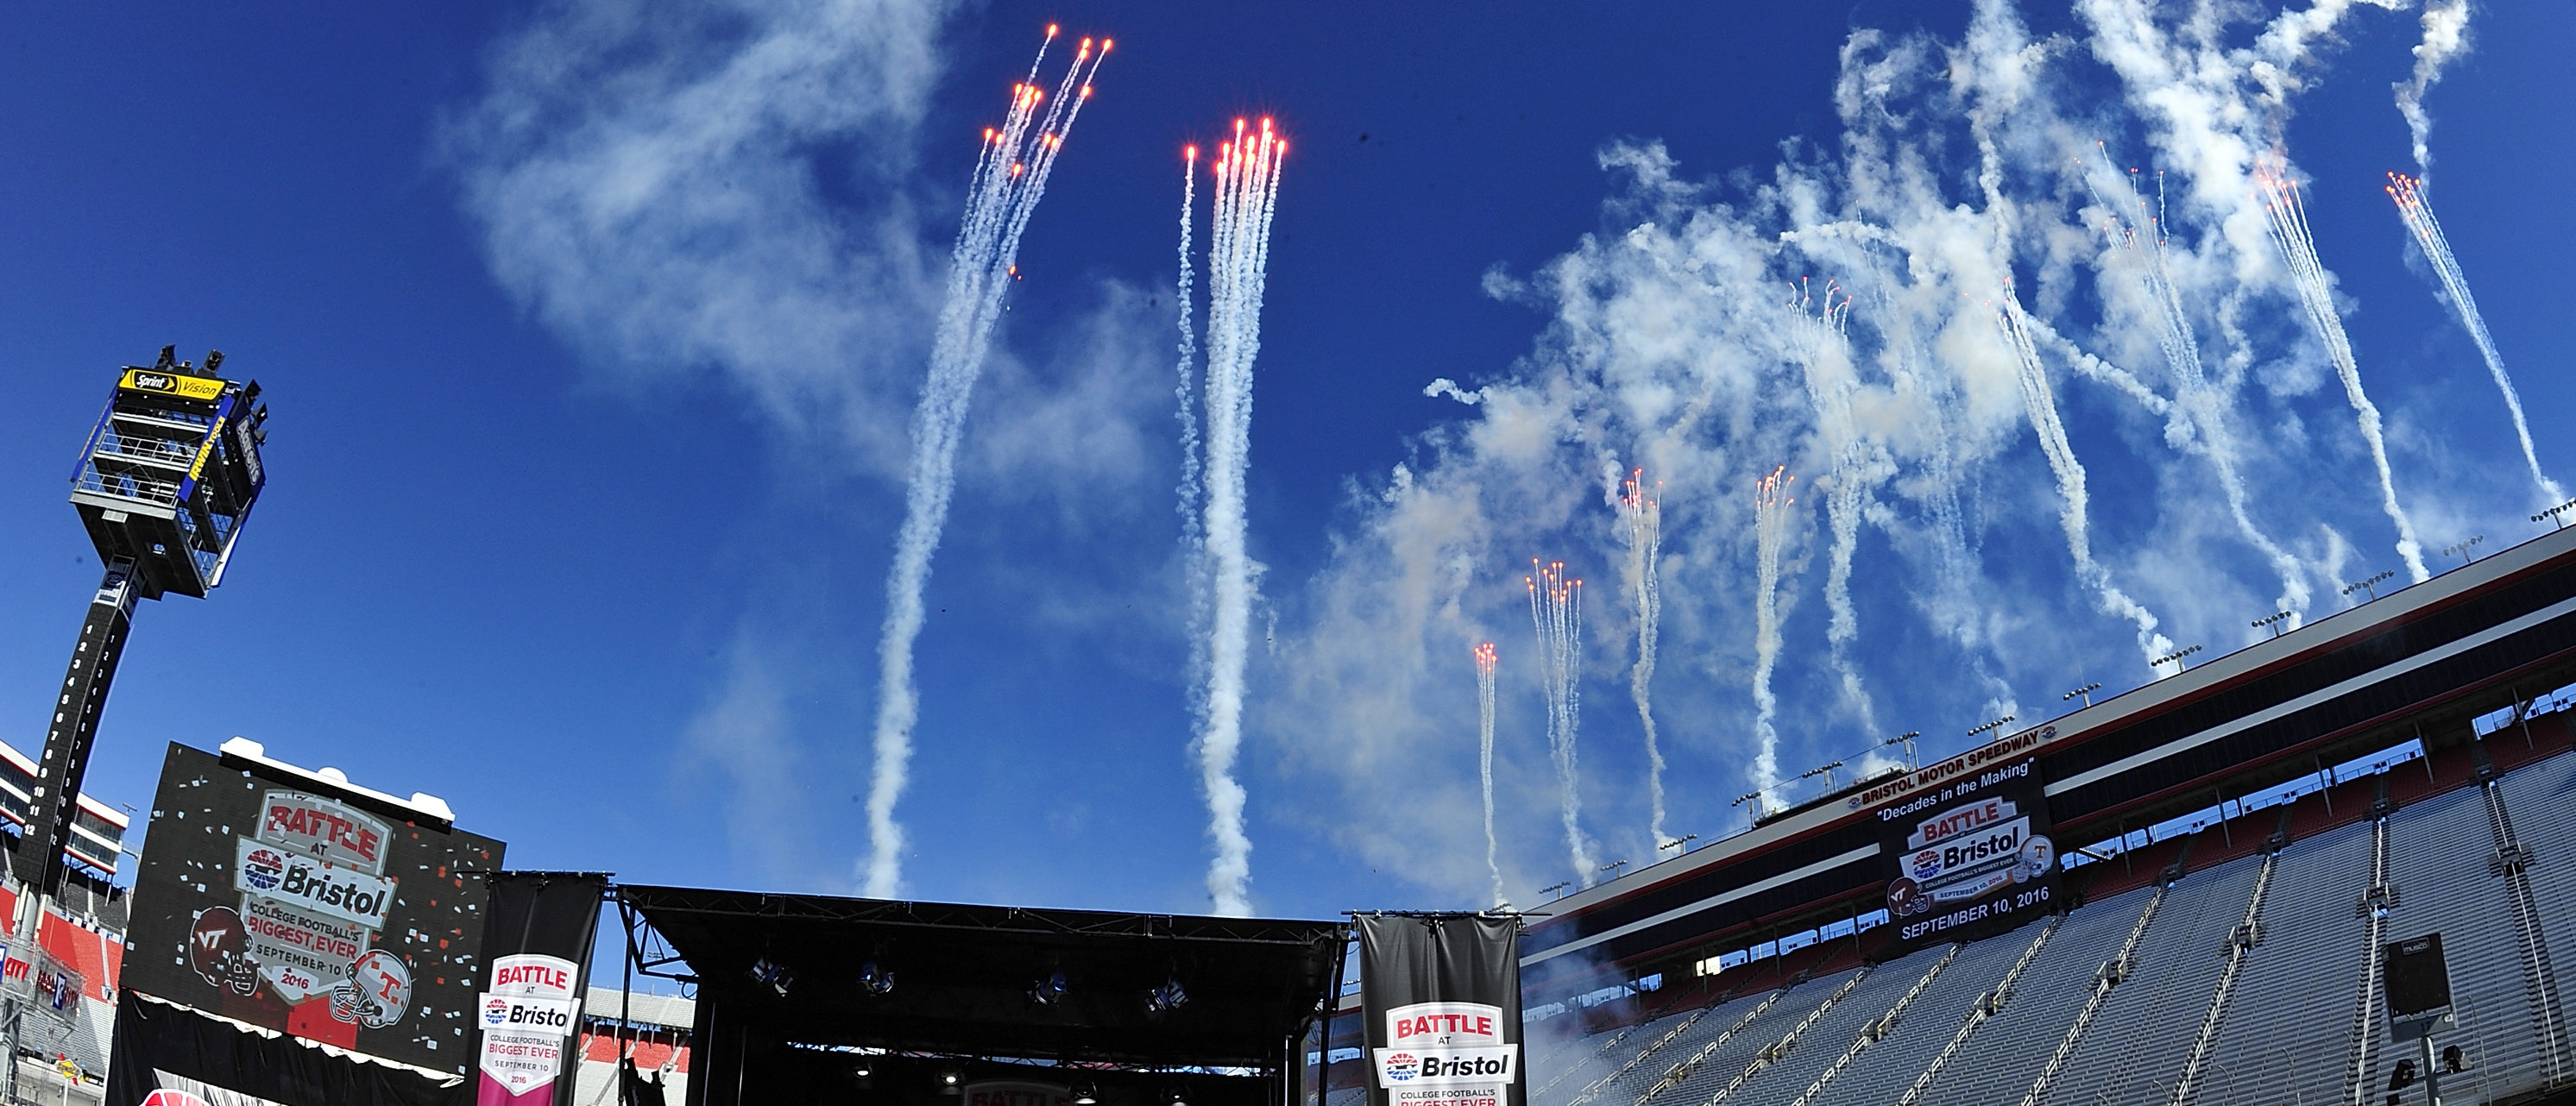 BRISTOL, TN - OCTOBER 14: Pyrotechnics fill the sky at Bristol Motor Speedway on October 14, 2013 in Bristol, Tennessee. Bristol Motor Speedway plans to transform the legendary Speedway into the world's largest football stadium for the inaugural Battle at Bristol, to be held on Saturday, September 10, 2016. The event will feature a game between the Virginia Tech Hokies and Tennessee Volunteers and is projected to set the NCAA record for highest single-game attendance. (Photo by Jared C. Tilton/Getty Images for Bristol Motor Speedway)